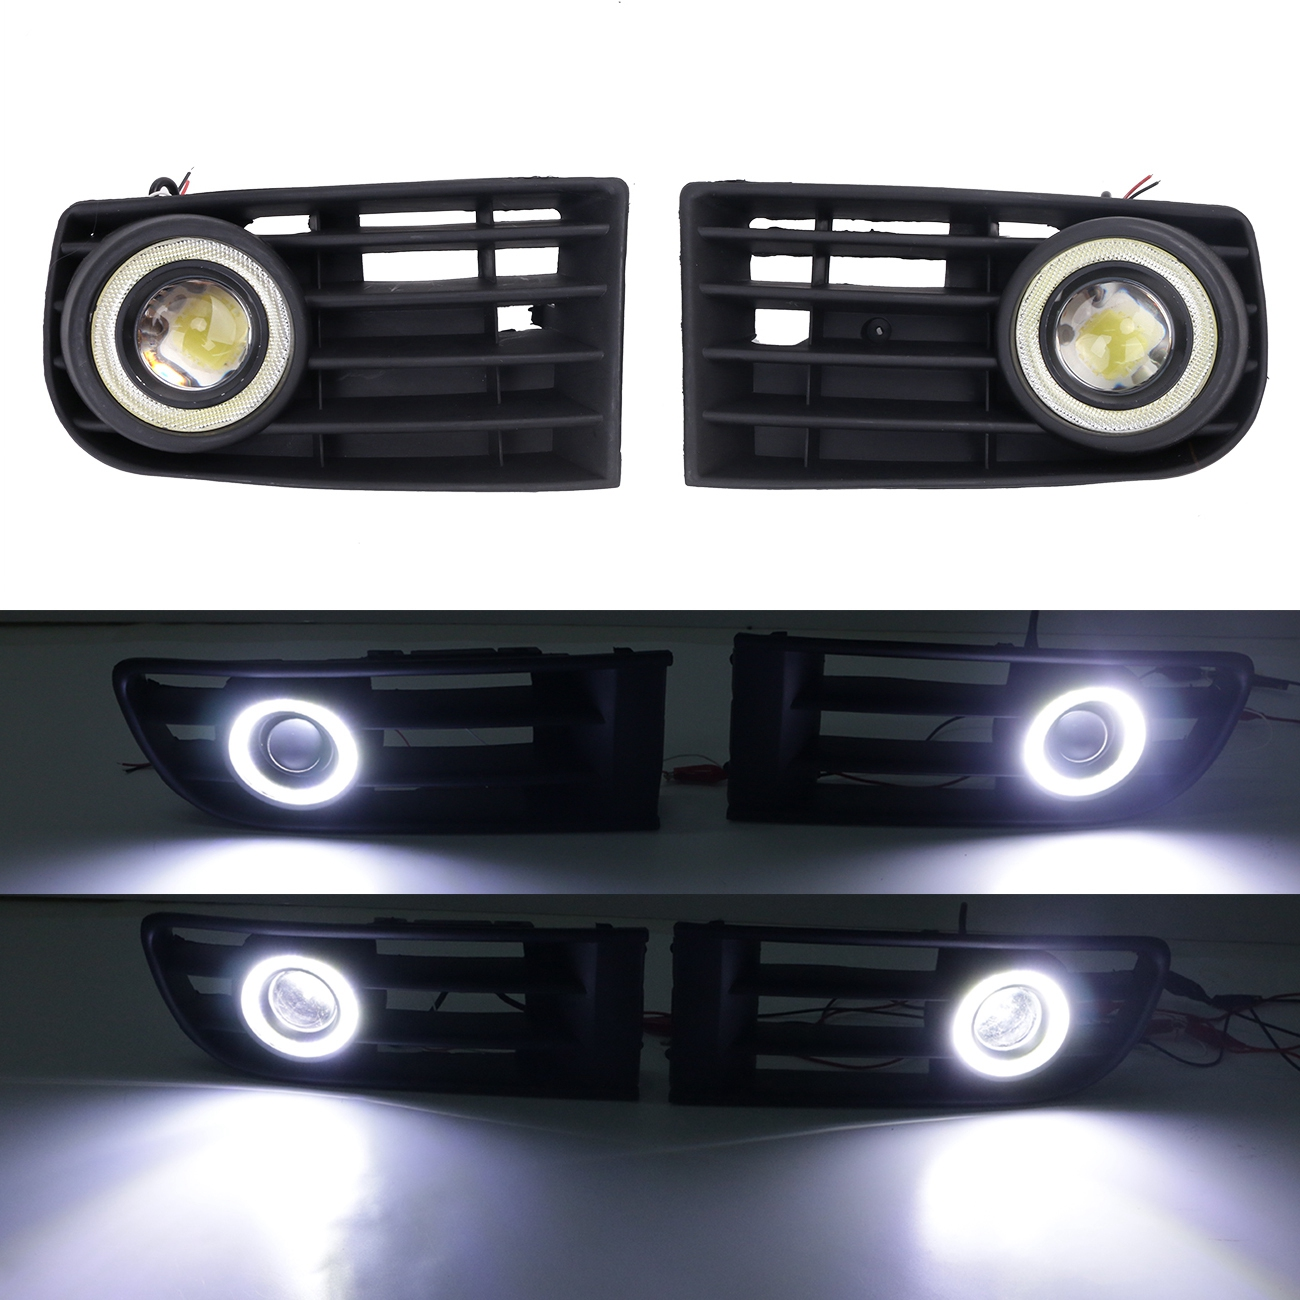 цены  LED Fog Lights Lamp DRL Angel Eyes Front Bumper Grille Kit For VW Golf GL GLS GTI TDI Mk5 Rabbit 2003 - 2009 #P363